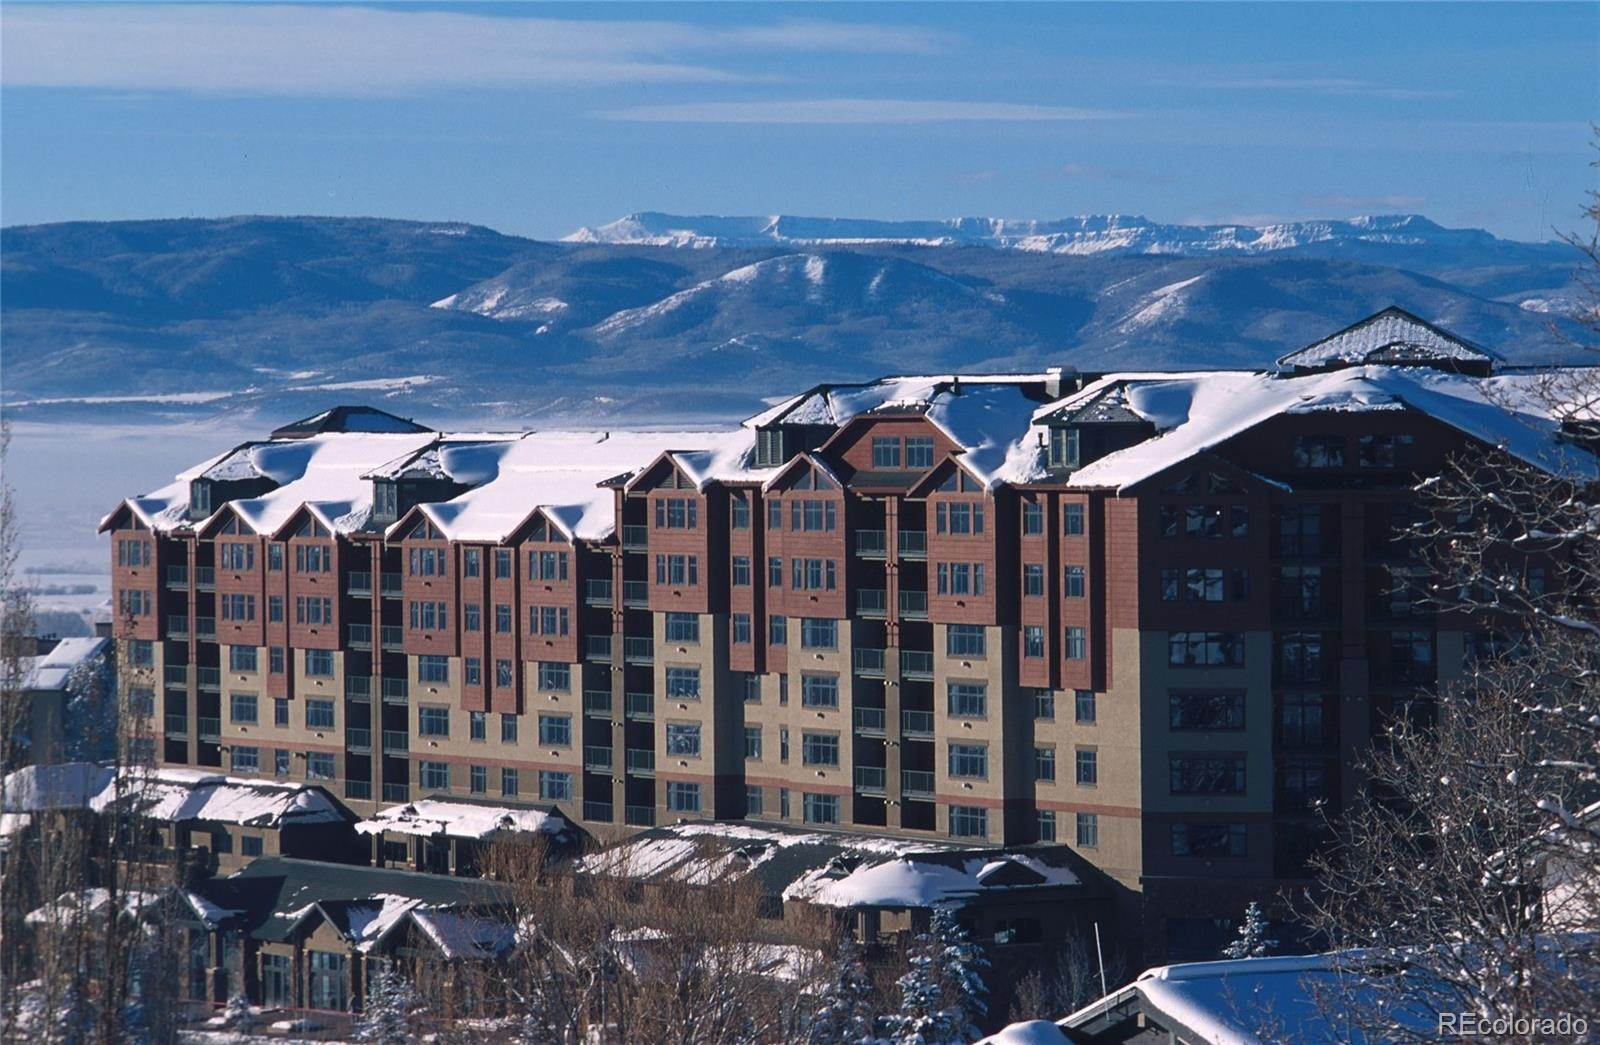 Single Family Homes for Sale at 2300 Mt. Werner Circle 411/414 Cal4 Steamboat Springs, Colorado 80487 United States